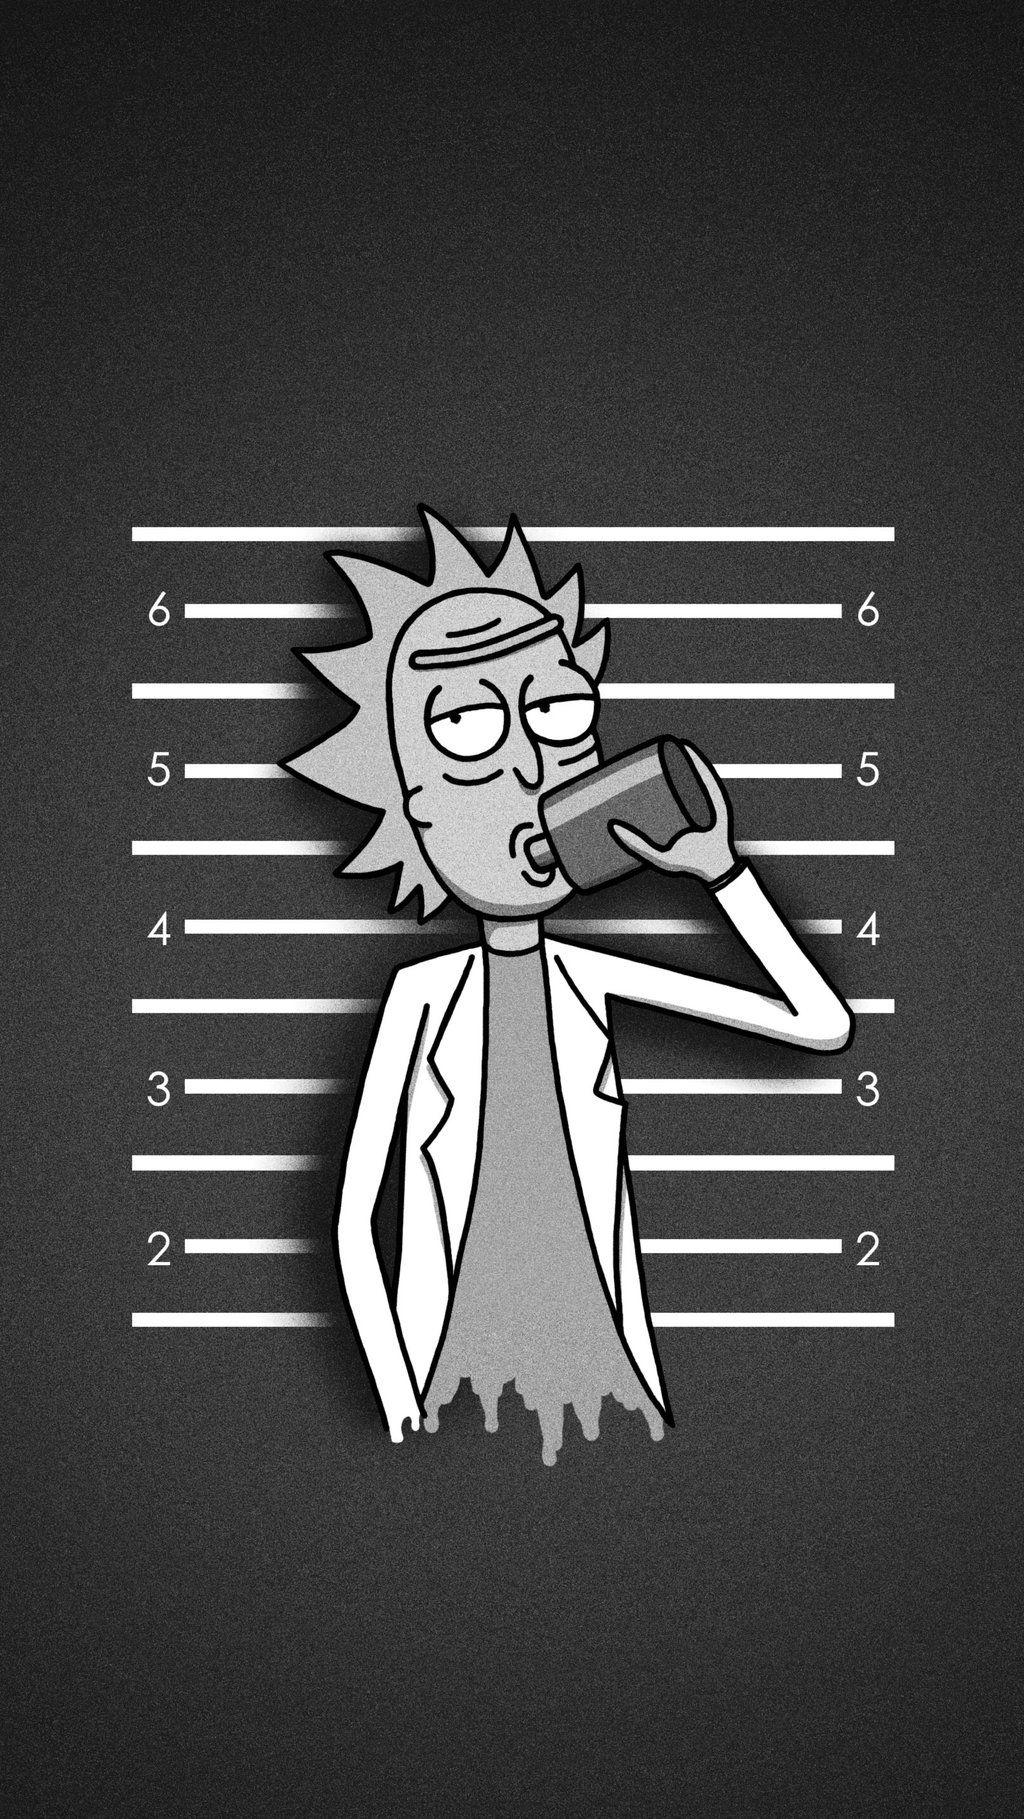 Rick and Morty Phone Wallpaper Dump - Album on Imgur